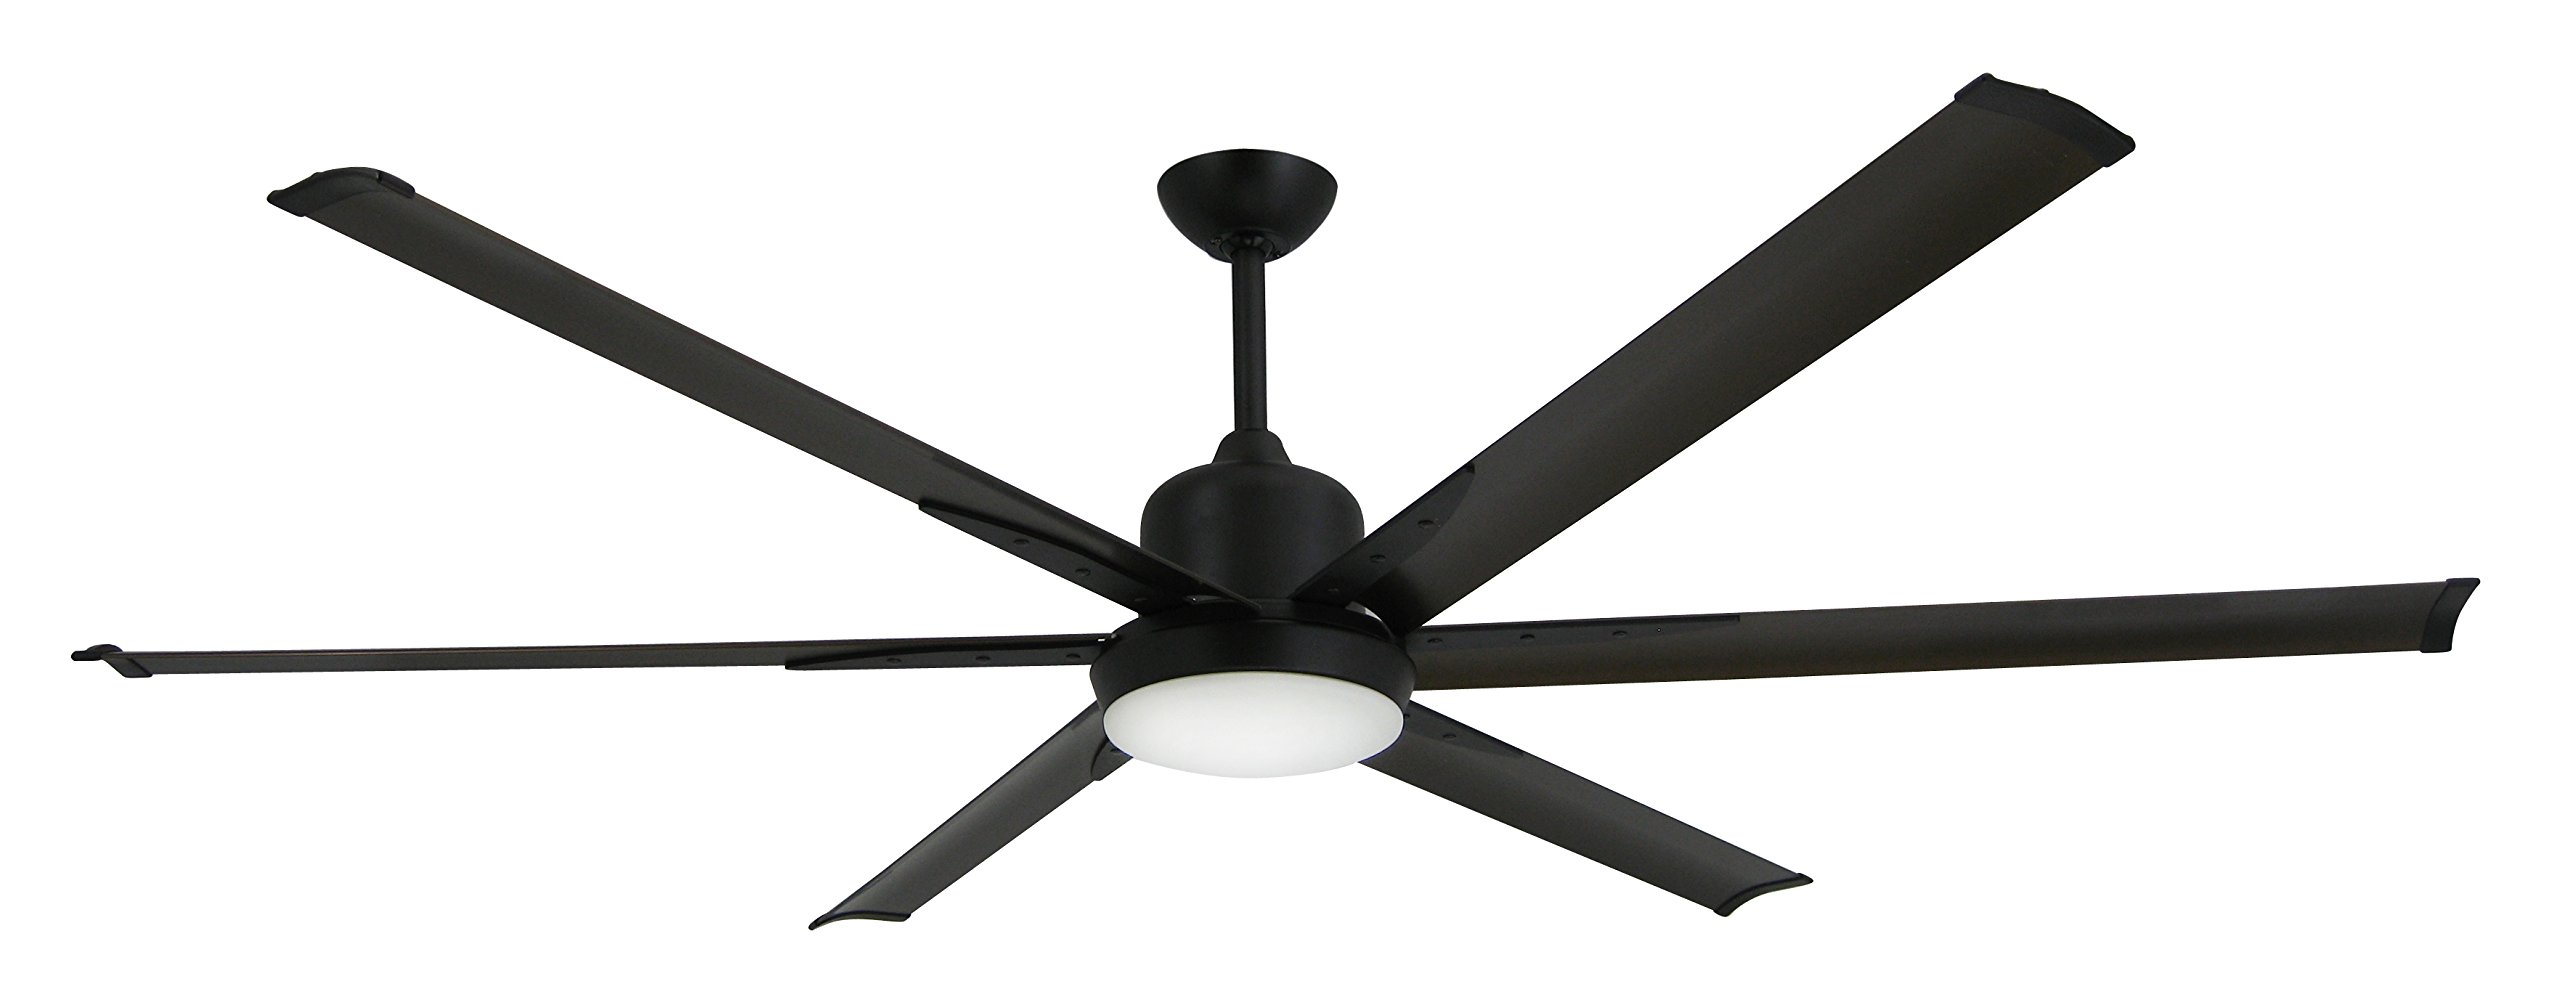 TroposAir Titan Oil Rubbed Bronze Large Industrial Ceiling Fan with DC-Motor, 72'' Extruded Aluminum Blades, Integrated Light and Remote by TroposAir by Dan's Fan City